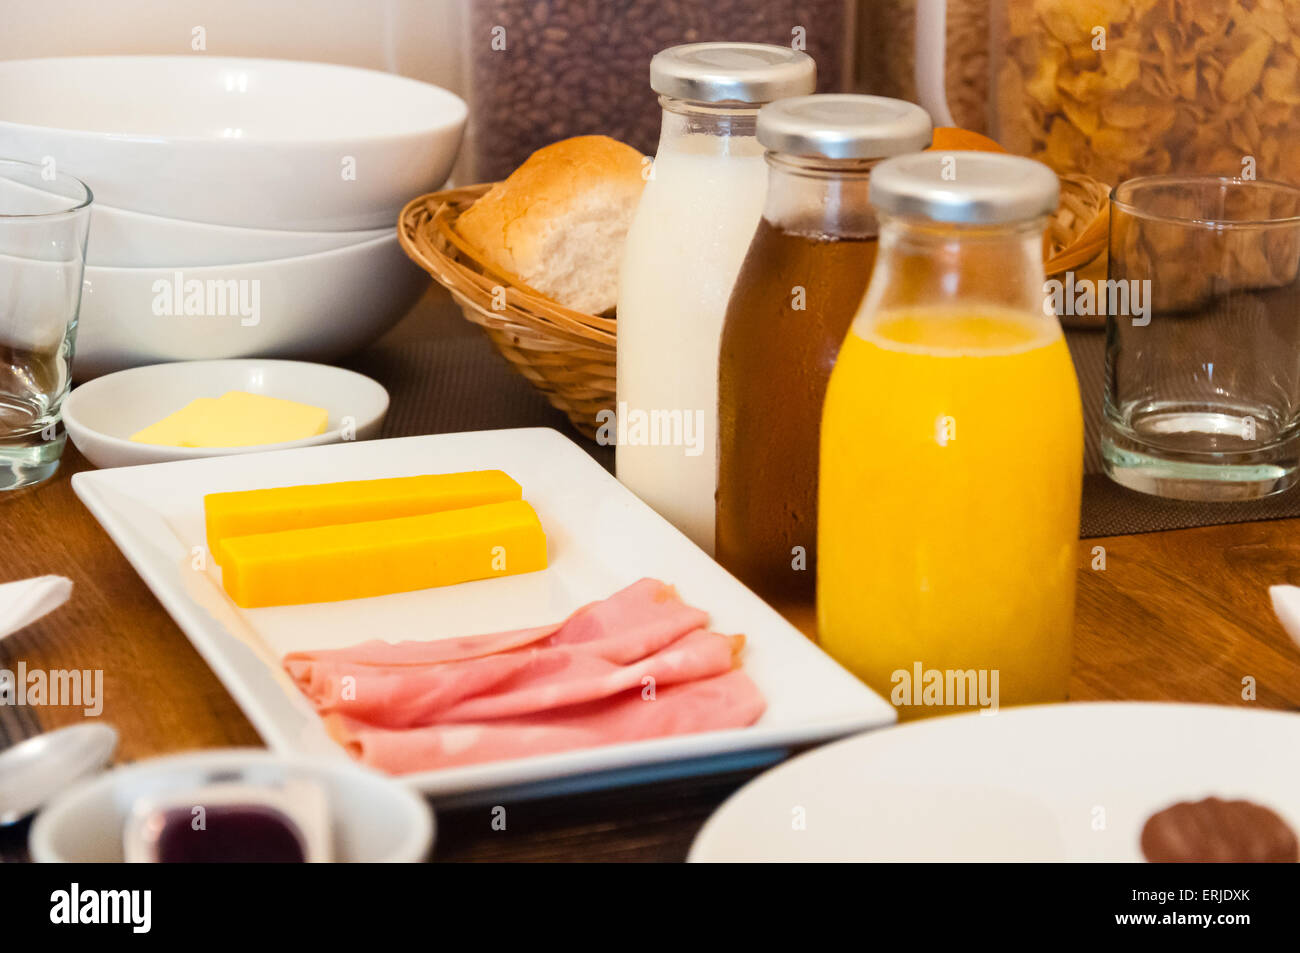 Table Setting For Breakfast Continental Breakfast Table Setting At A Hotel Stock Photo